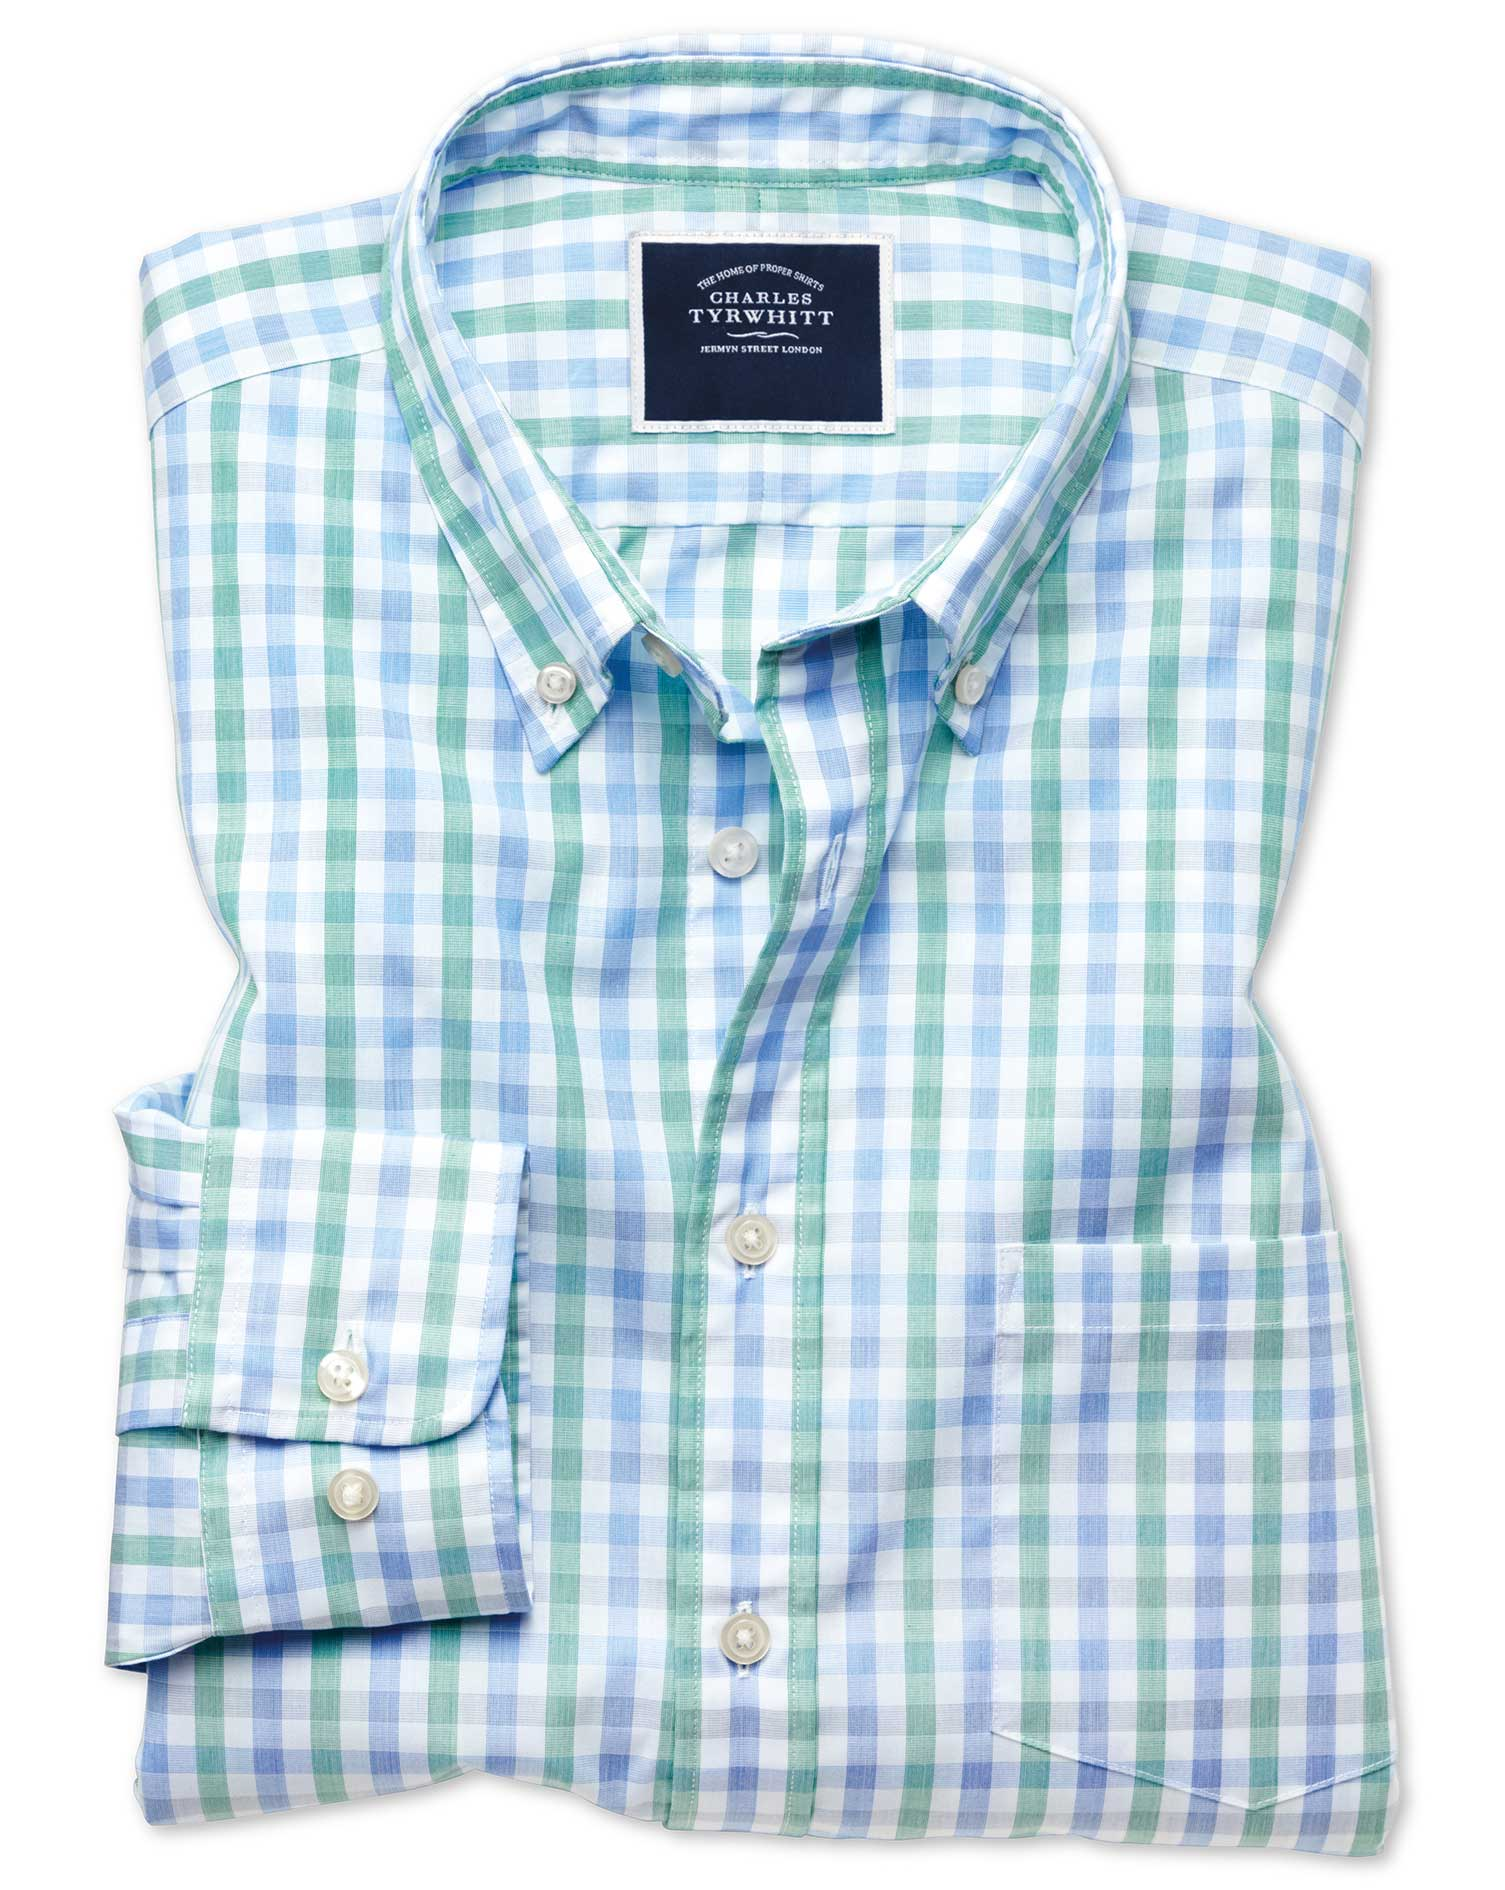 Cotton Slim Fit Green And Blue Gingham Soft Washed Non-Iron Tyrwhitt Cool Shirt